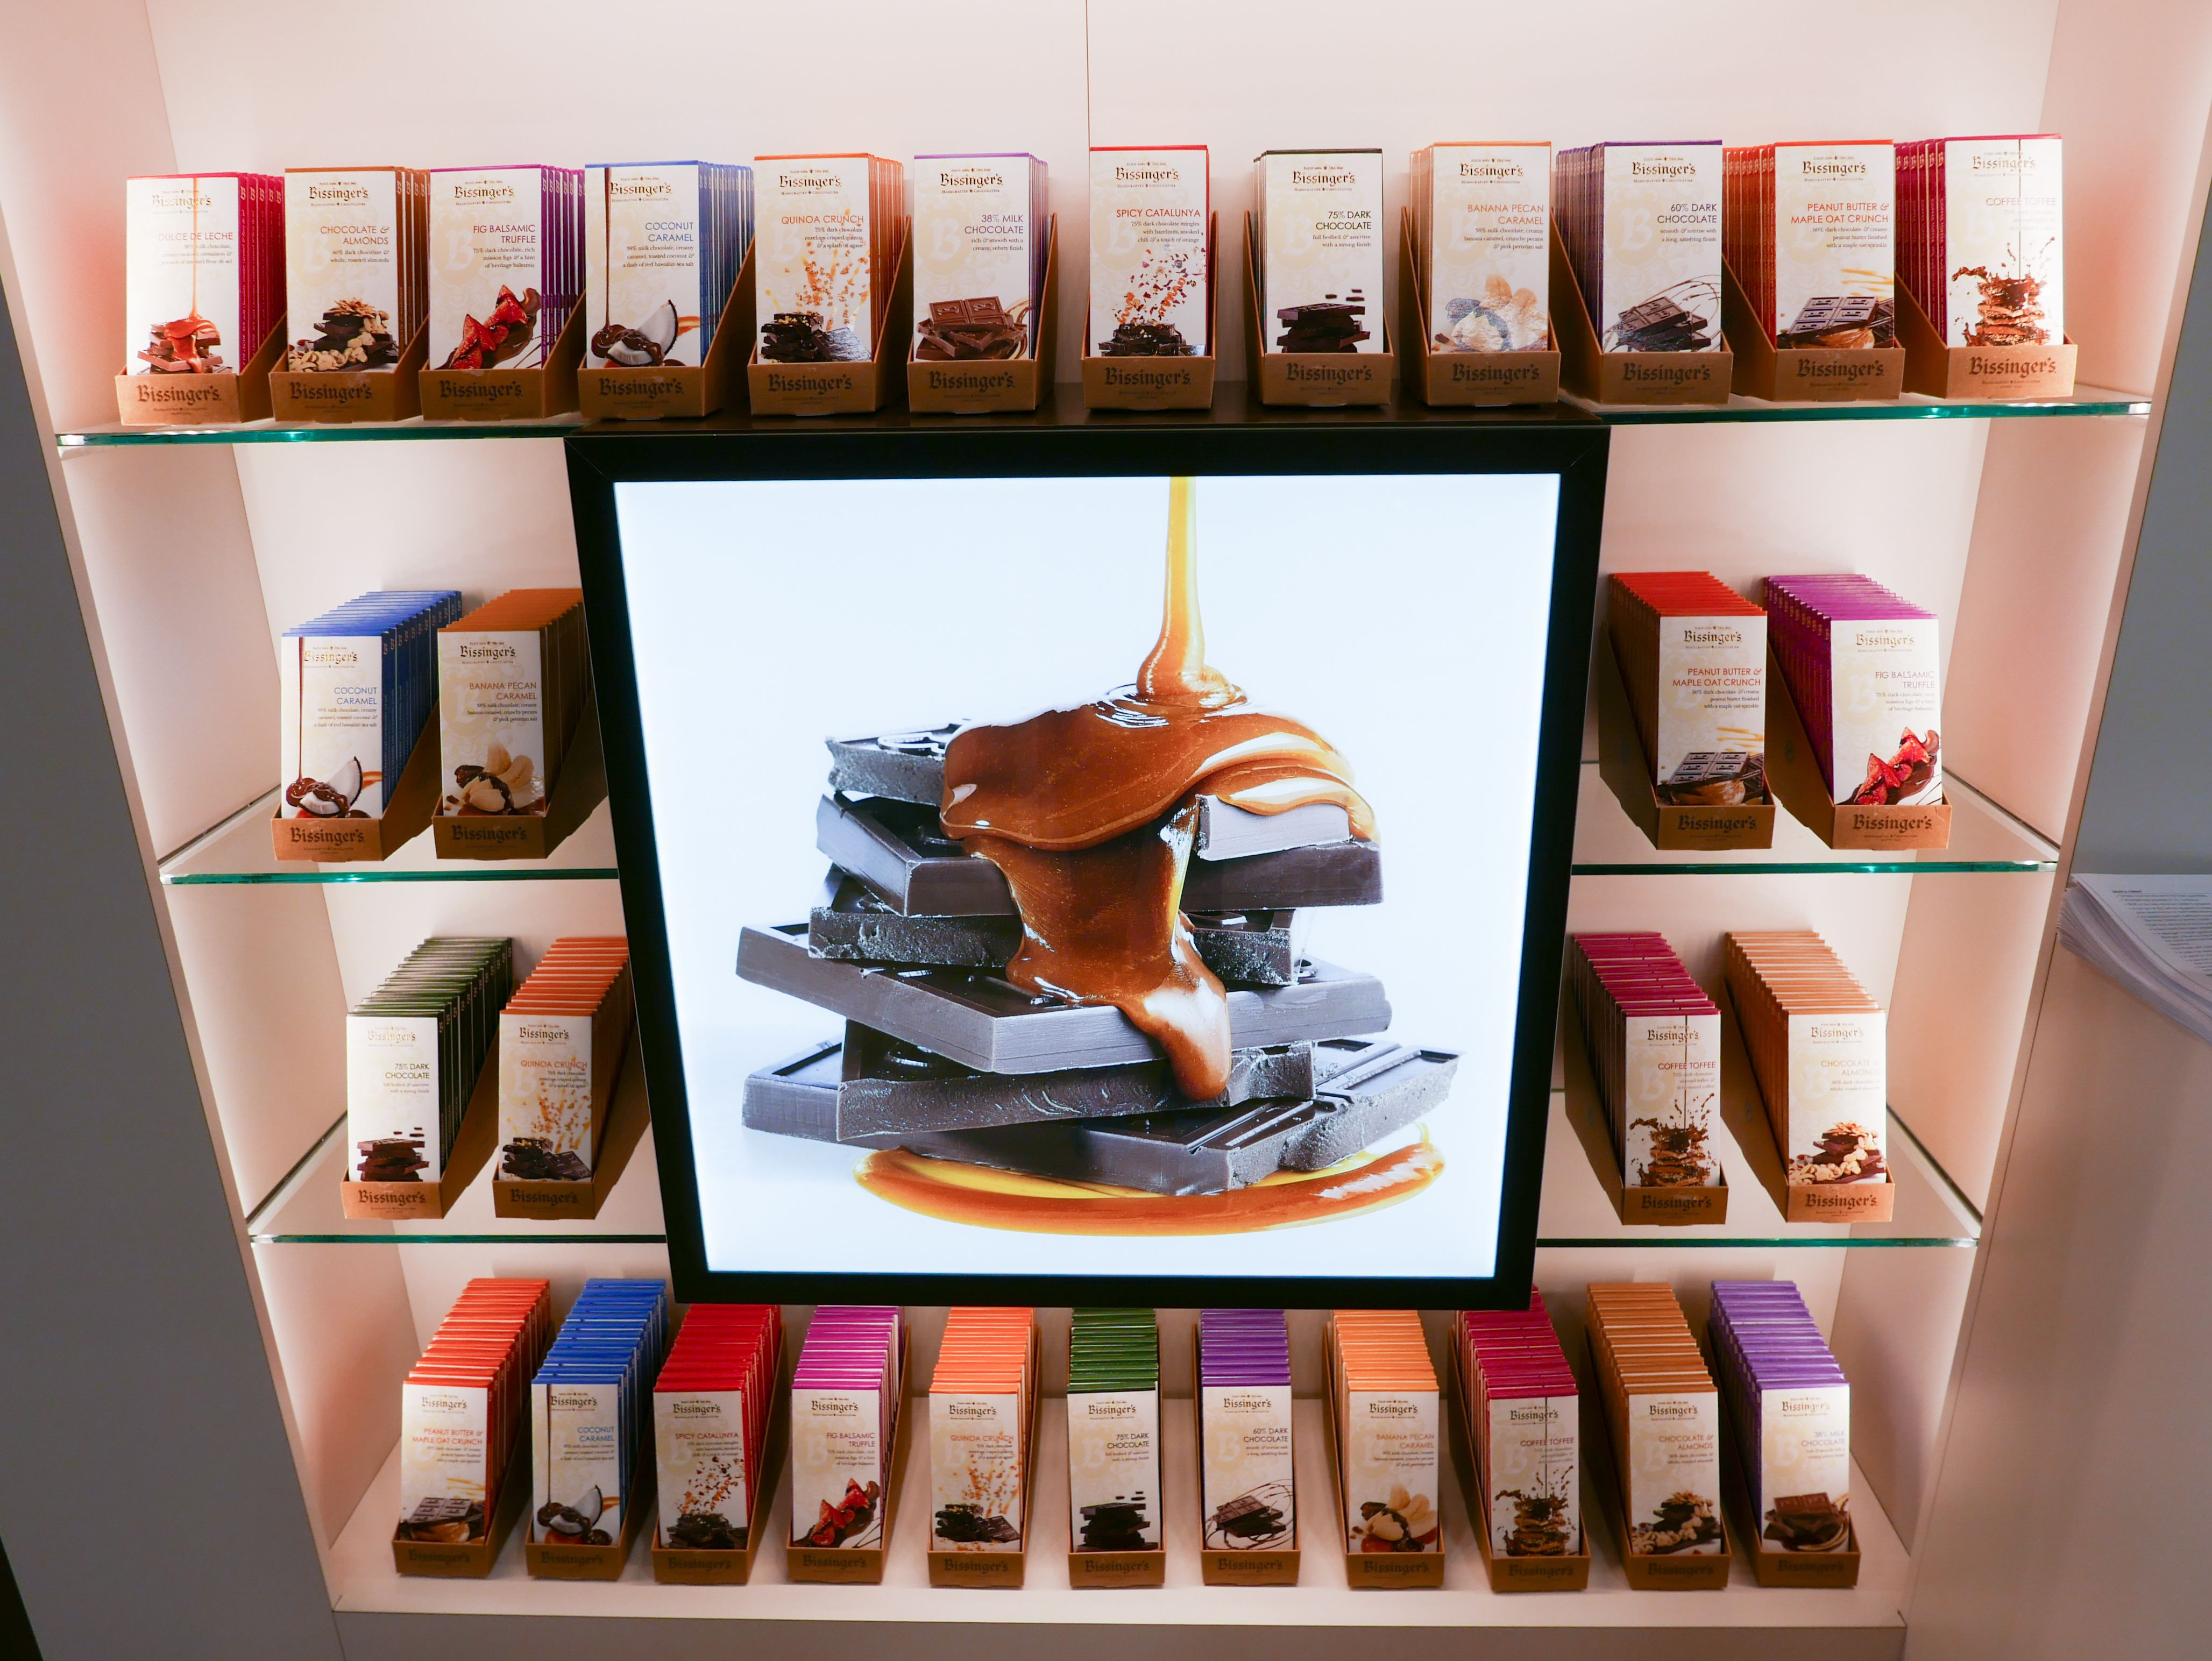 Simple Exhibition Stand Yet : Simple yet stunning product display in a tradeshow booth